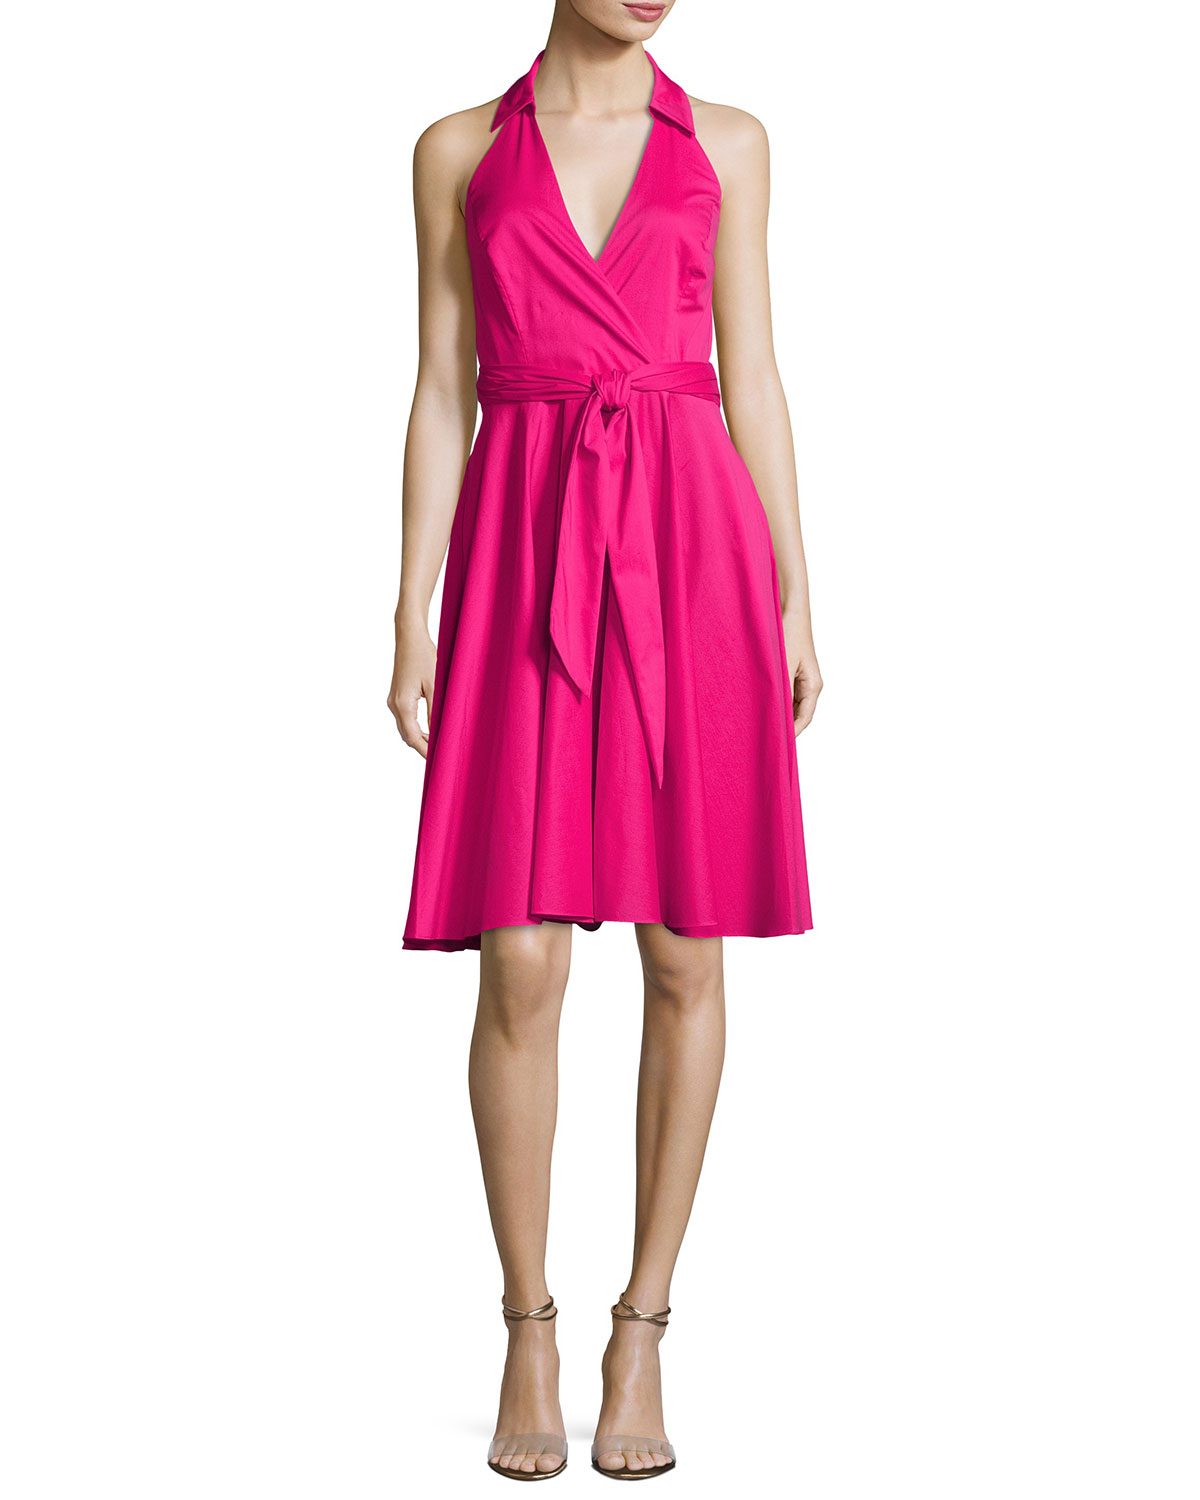 Neiman Marcus Pink Home Decor Ebth: Badgley Mischka Platinum Sleeveless Tie-Waist Wrap Dress